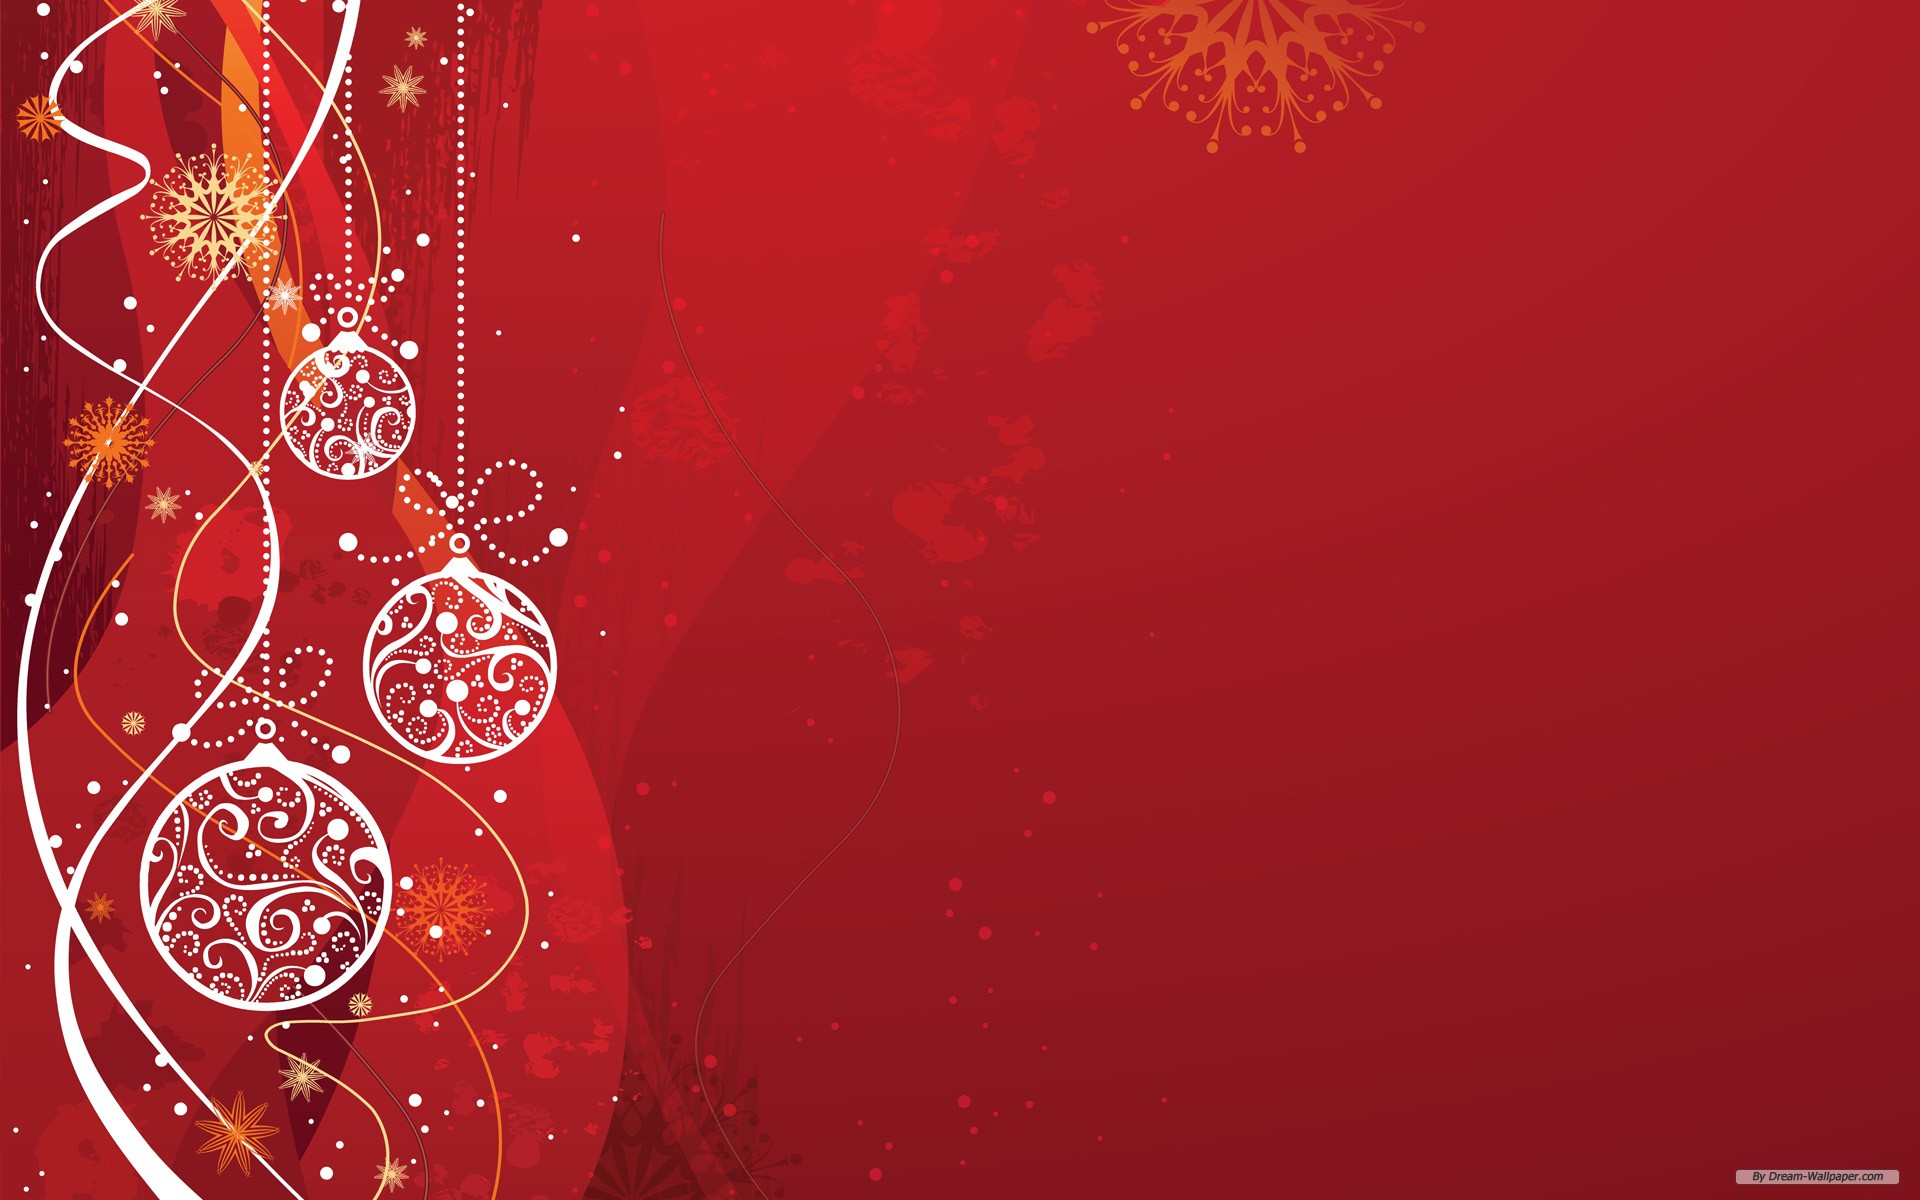 Holiday Backgrounds wallpaper 1920x1200 26415 1920x1200